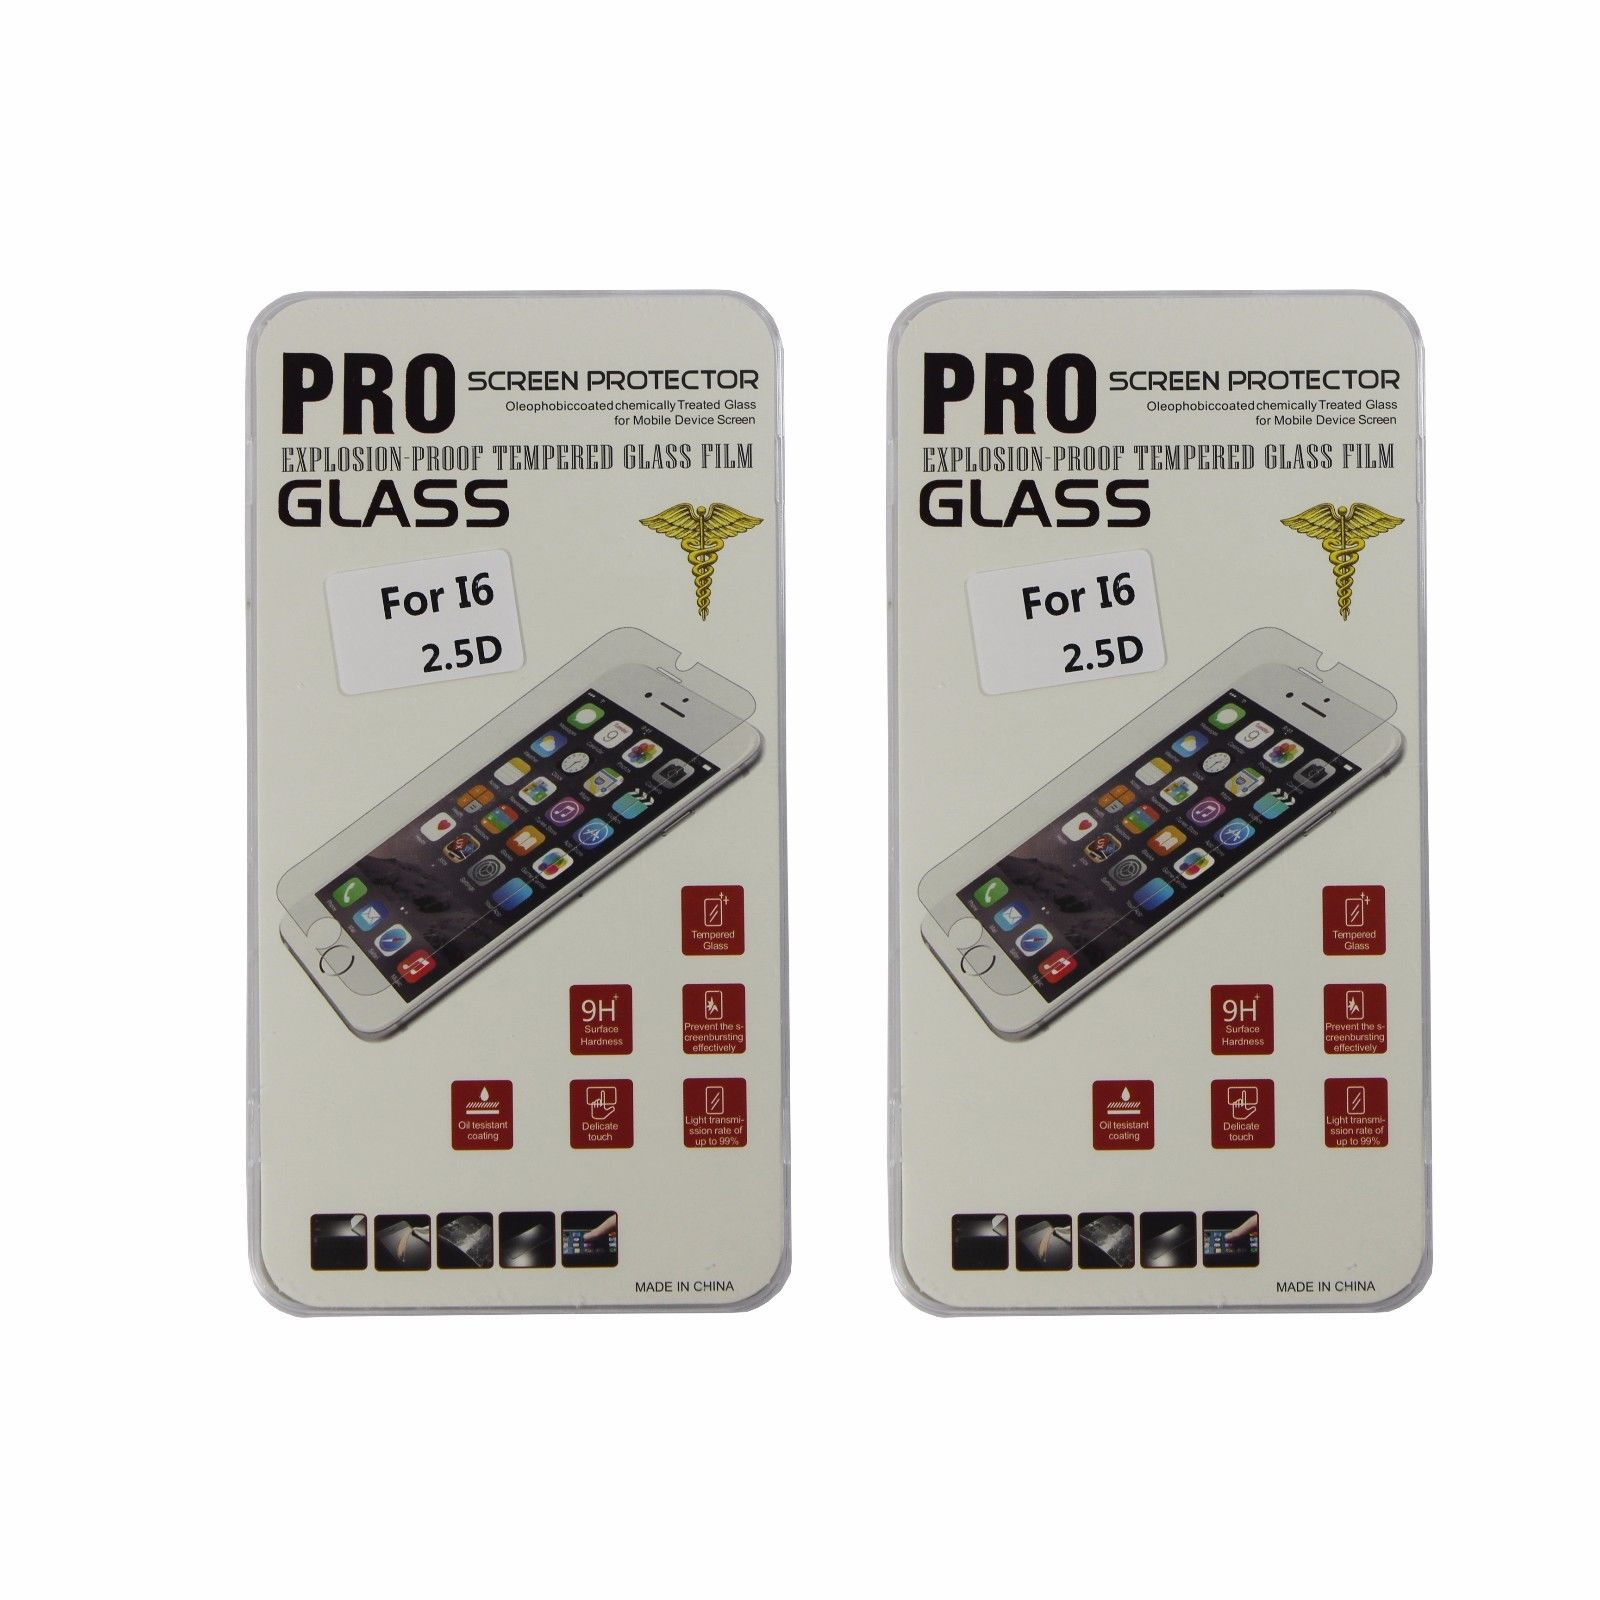 Premium Tempered Glass Screen Protector for iPhone 6